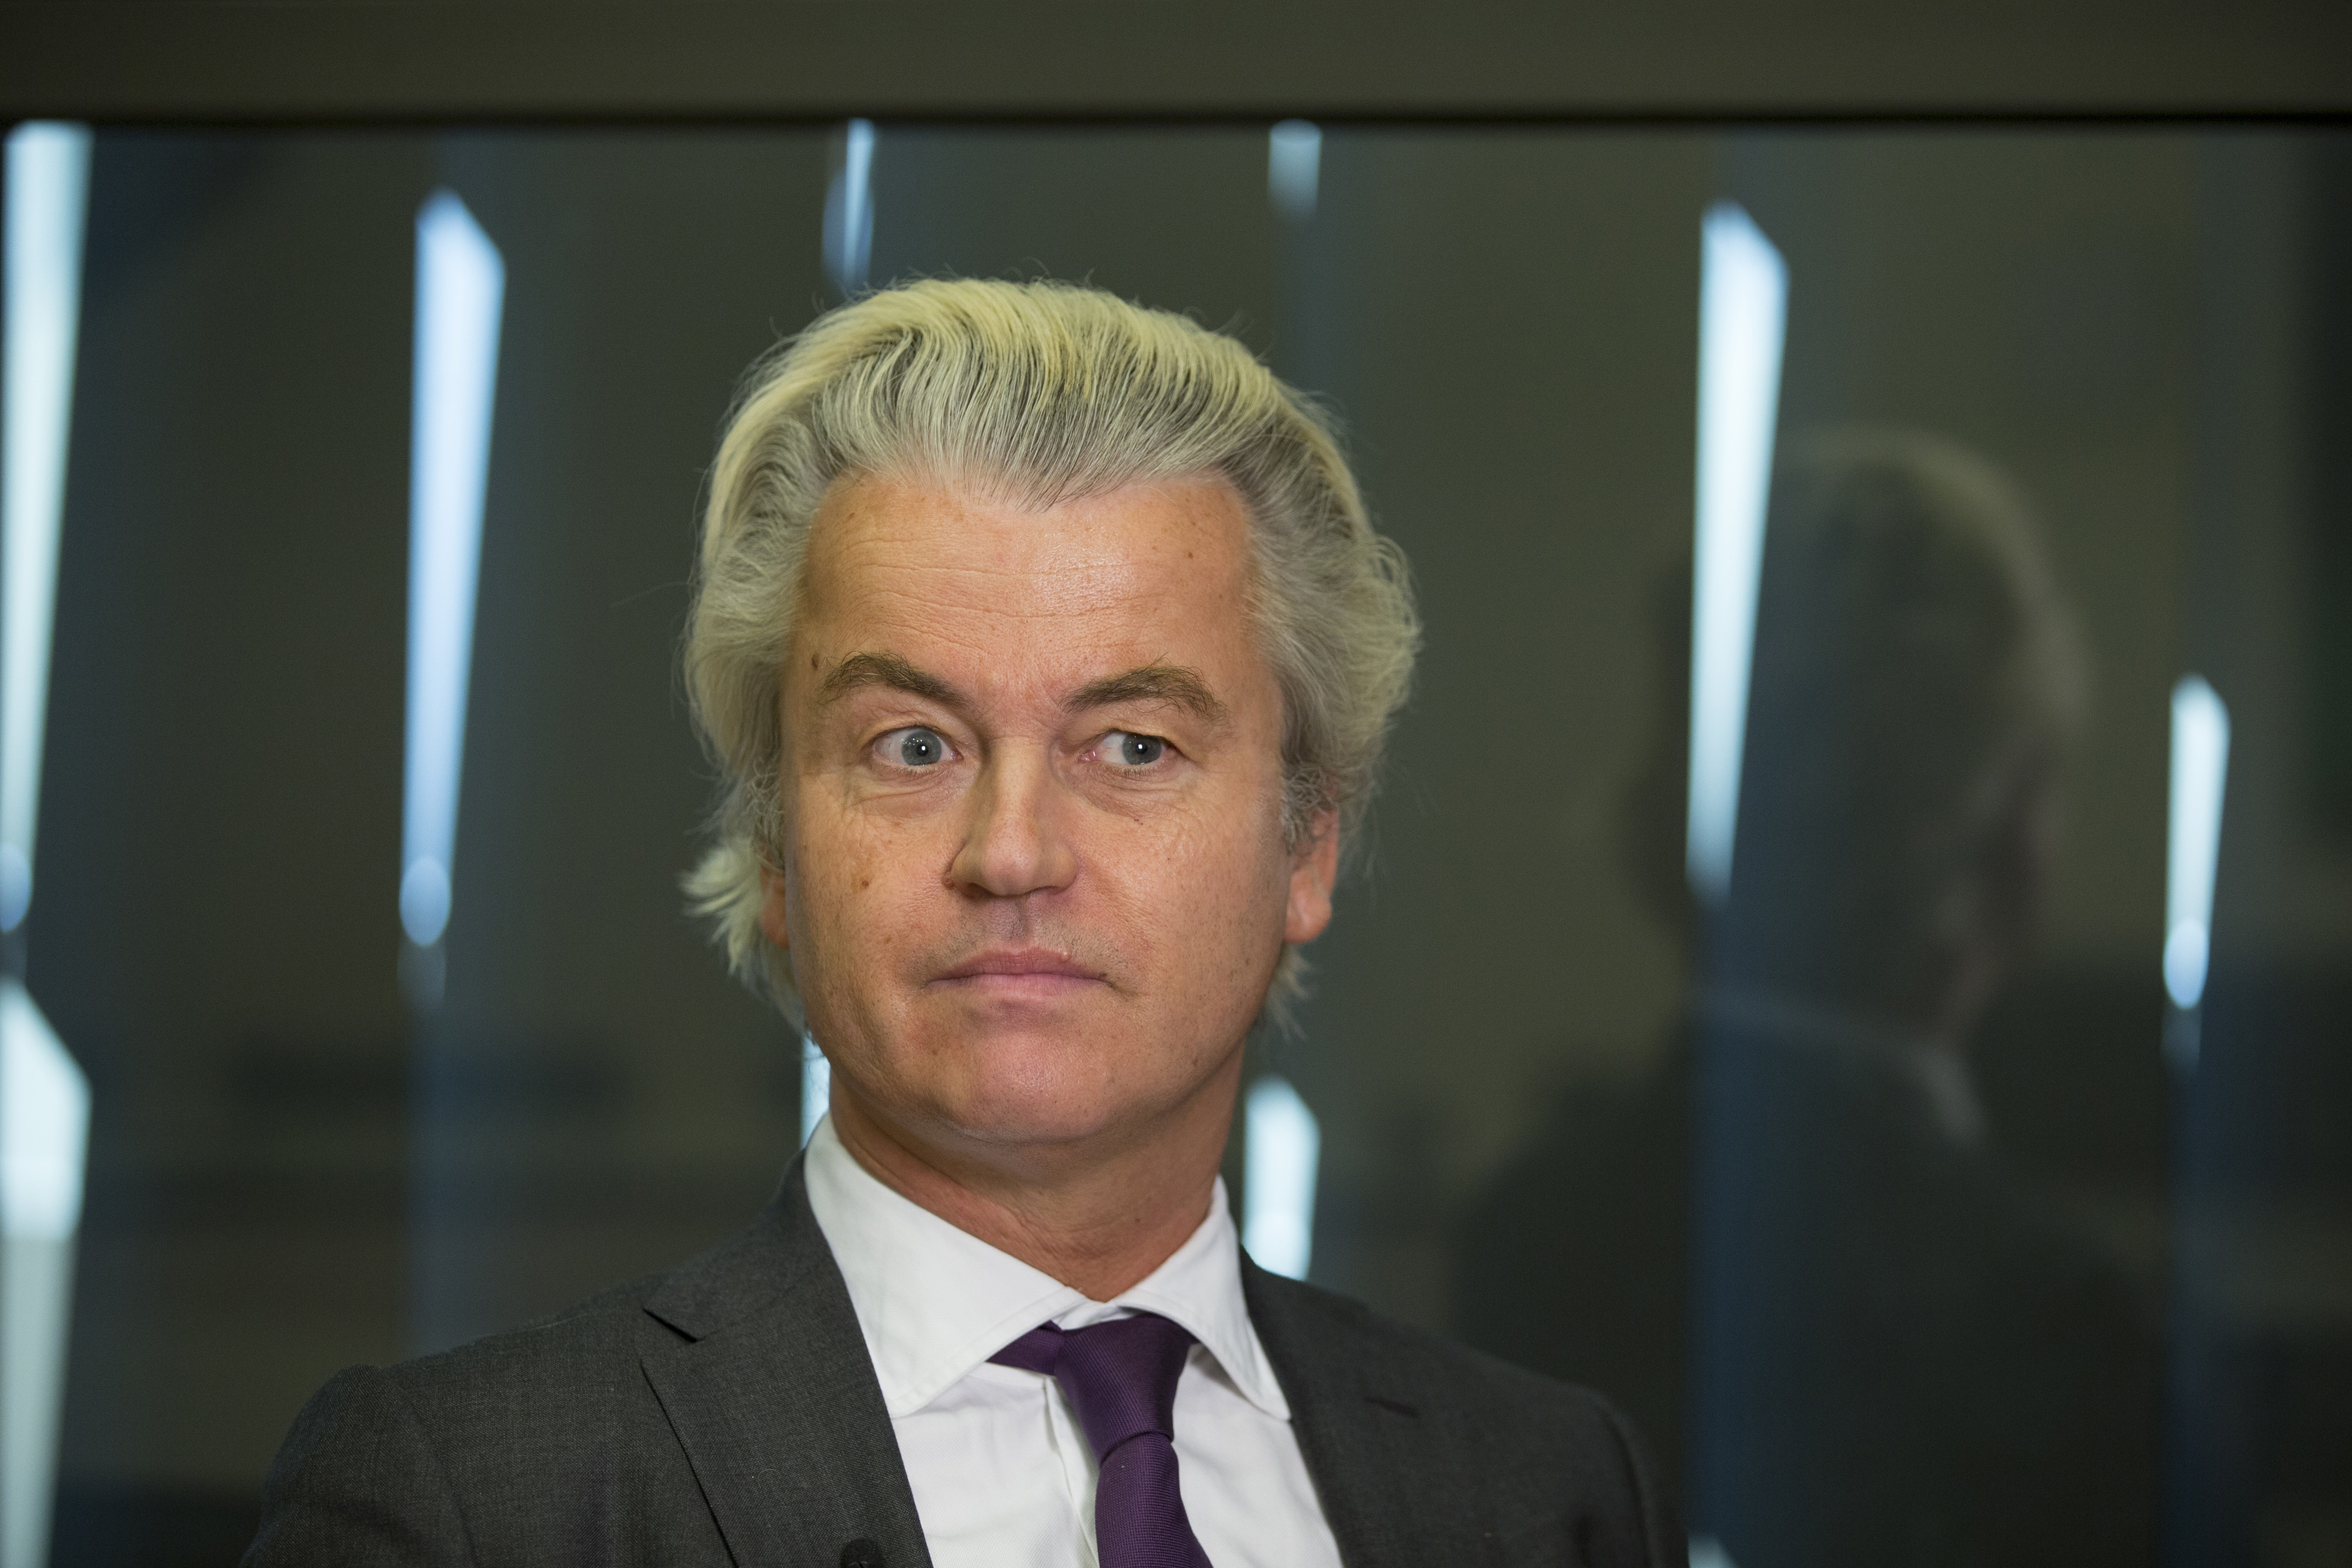 Geert Wilders, leader of the Freedom Party, reacts during an interview in The Hague, Netherlands, on Thursday, June 16, 2016..